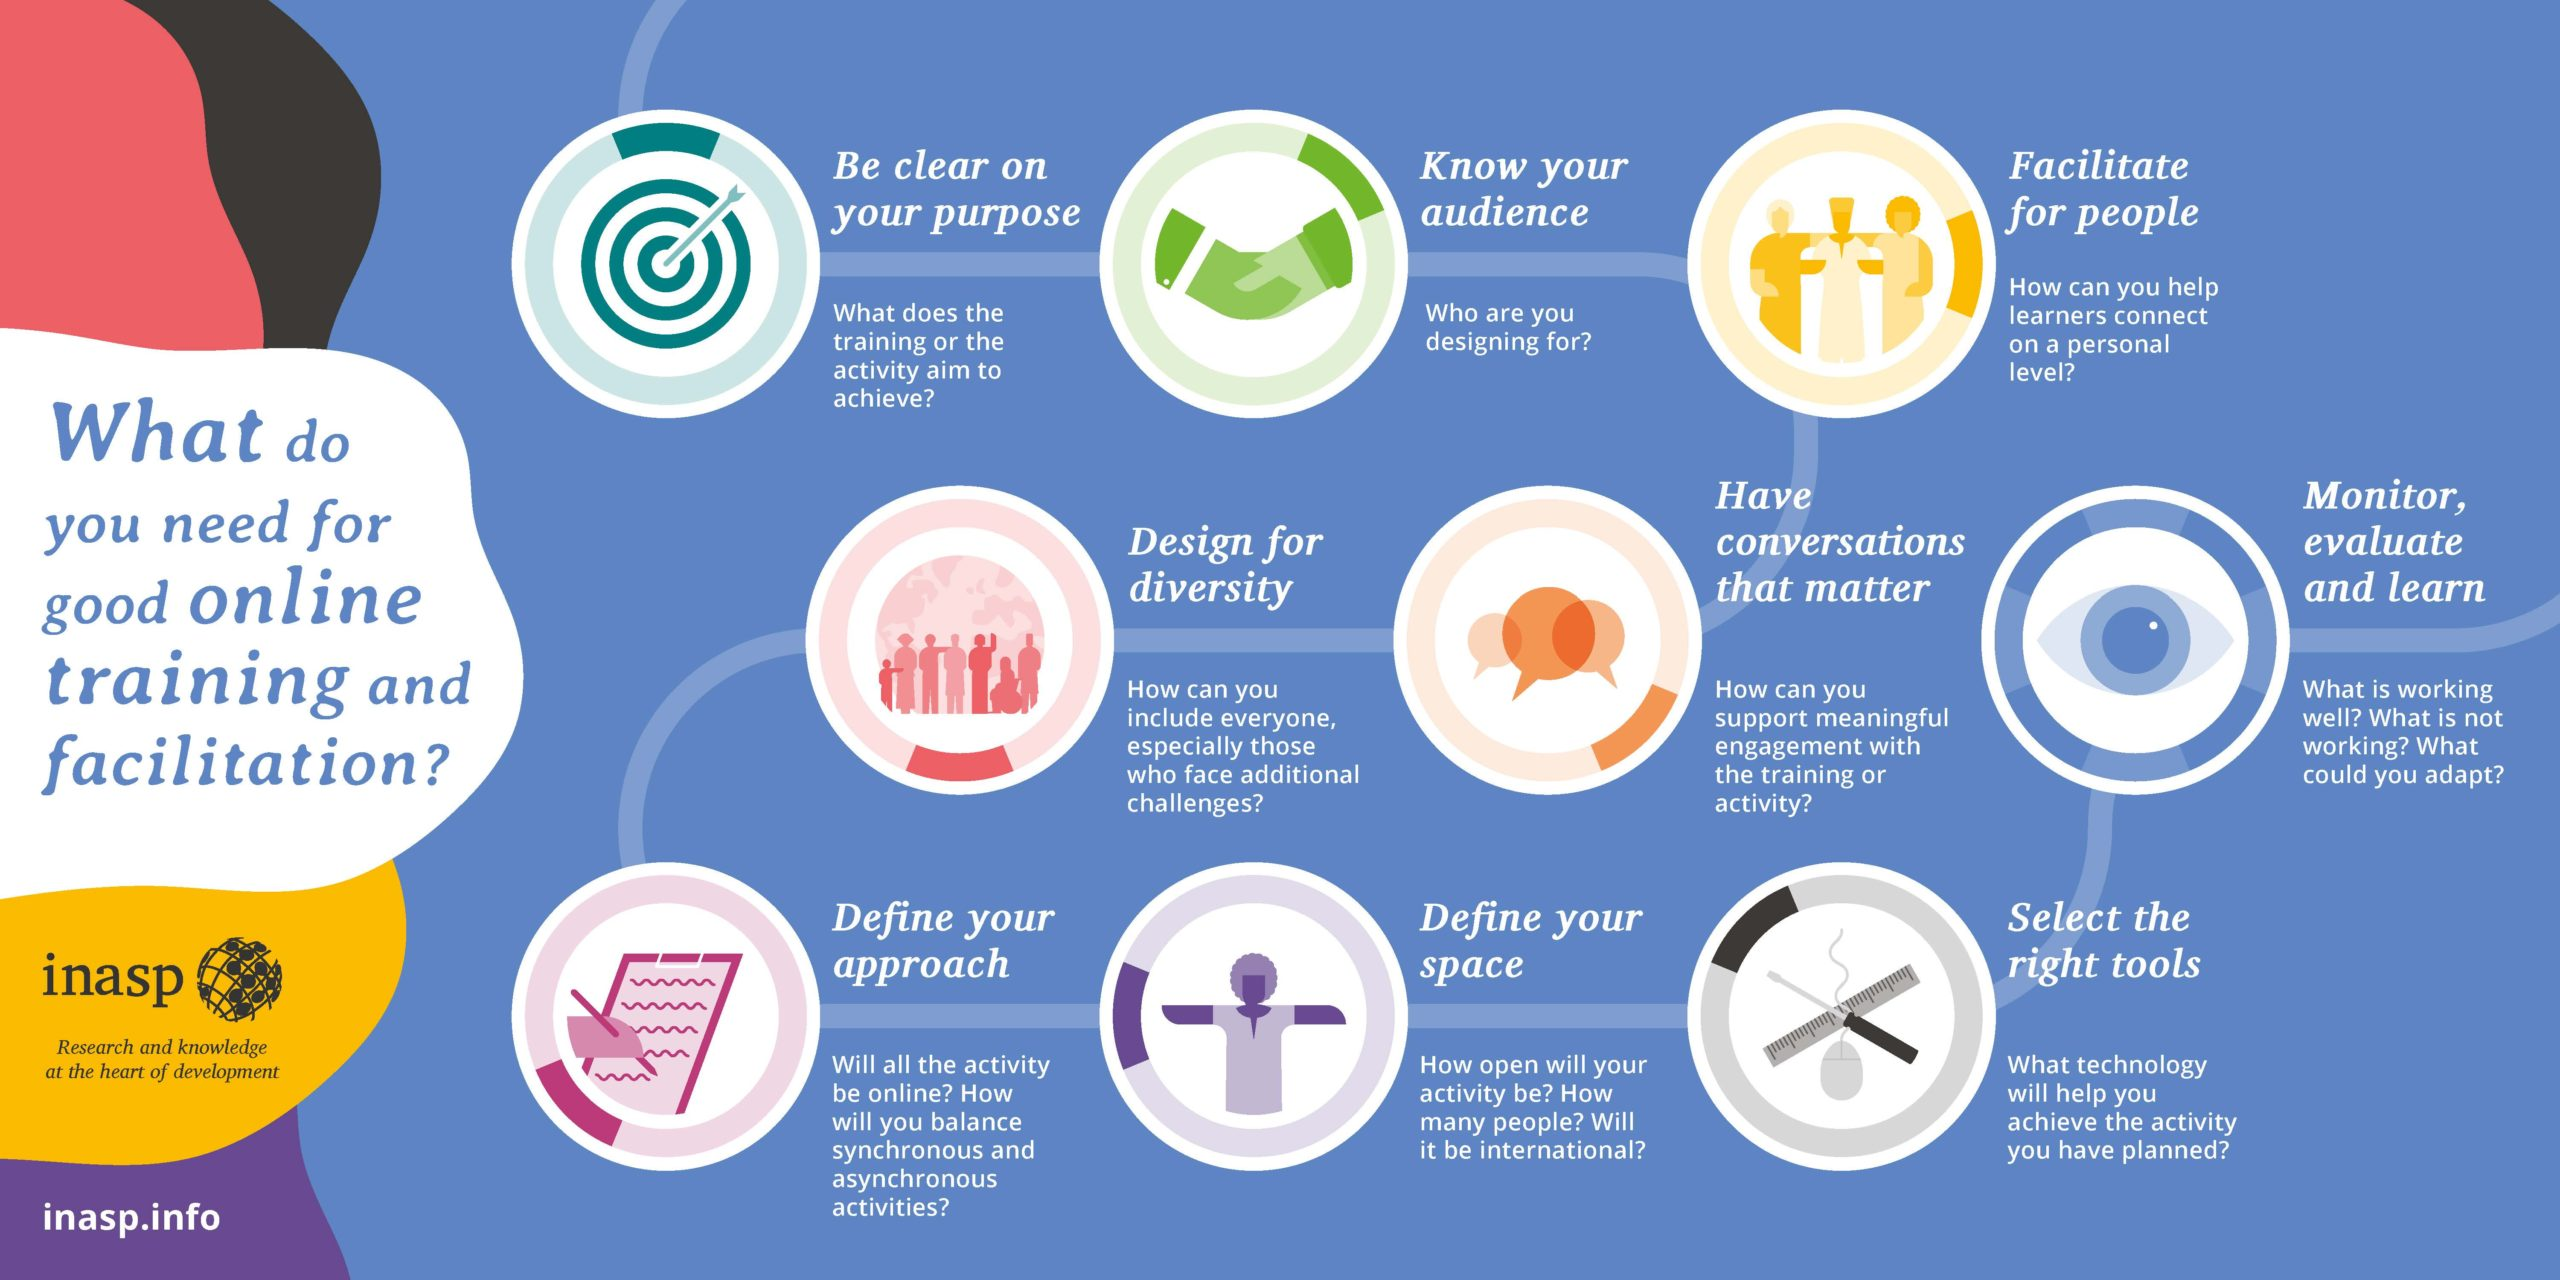 Infographic of steps to consider in online facilitation.